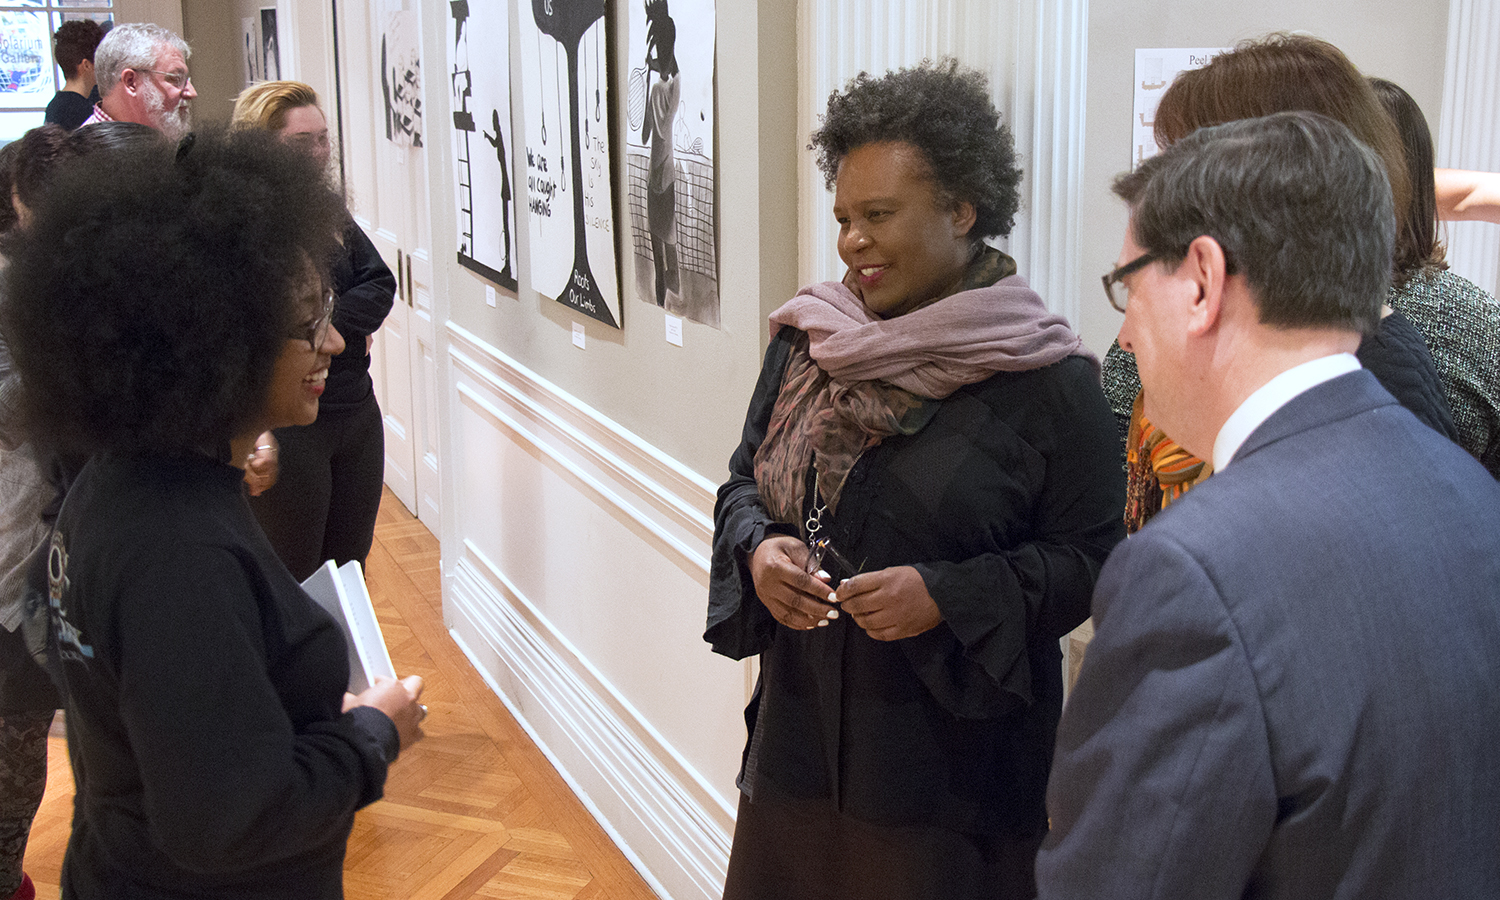 Student Art exhibit exploring the themes from Citizen by Claudia Rankine. Also featuring work by visiting artist Stacey Robinson